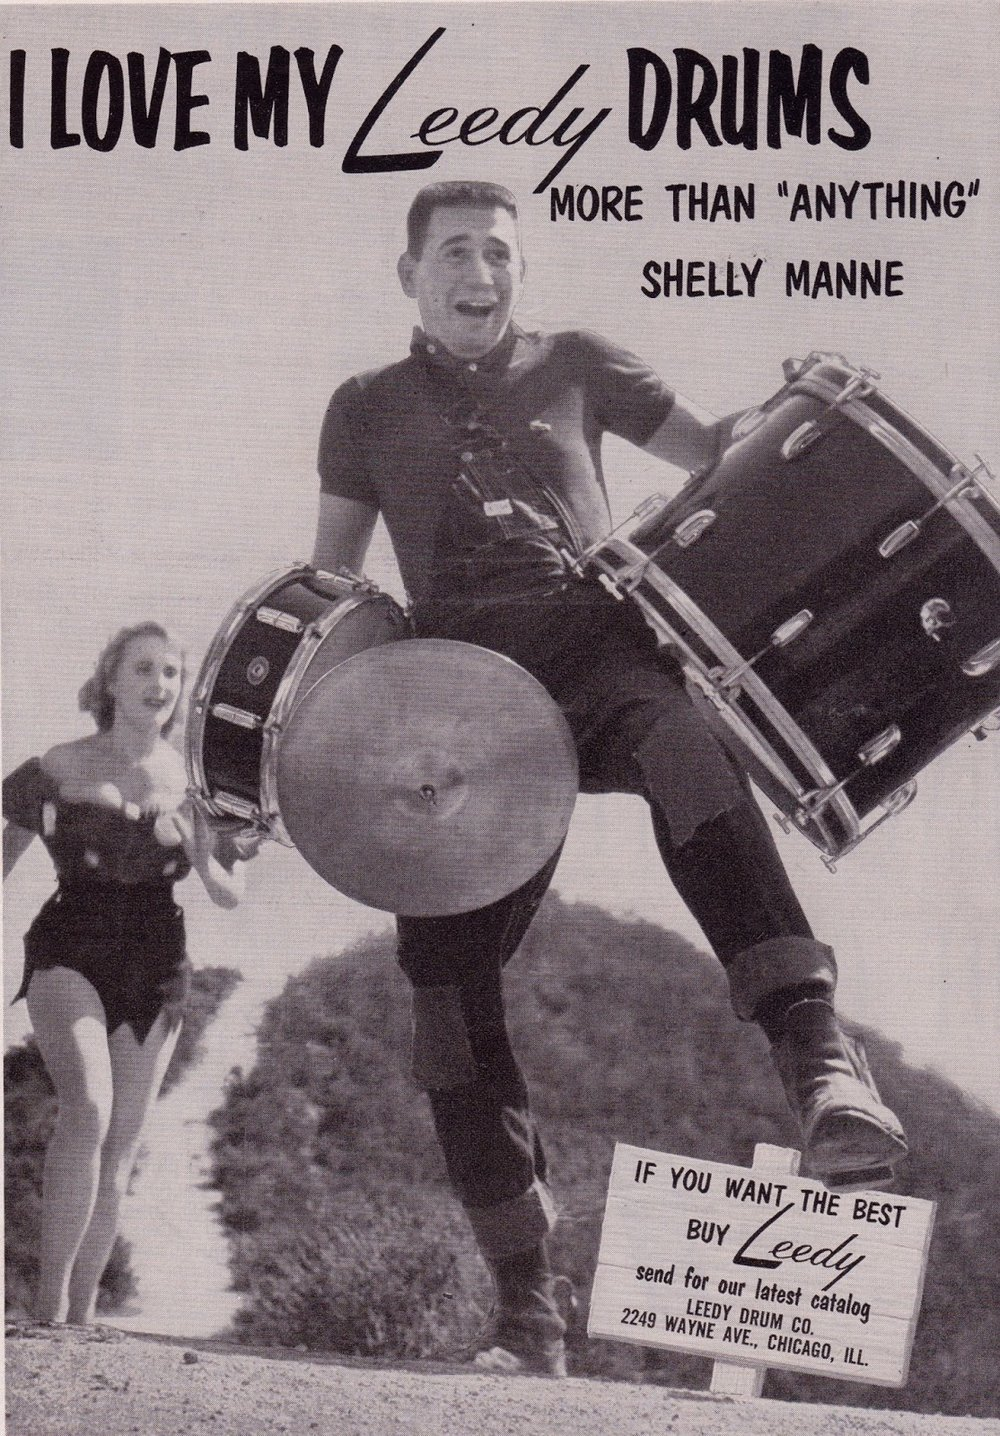 SHELLY AMUSING LEEDY AD 1958.jpg